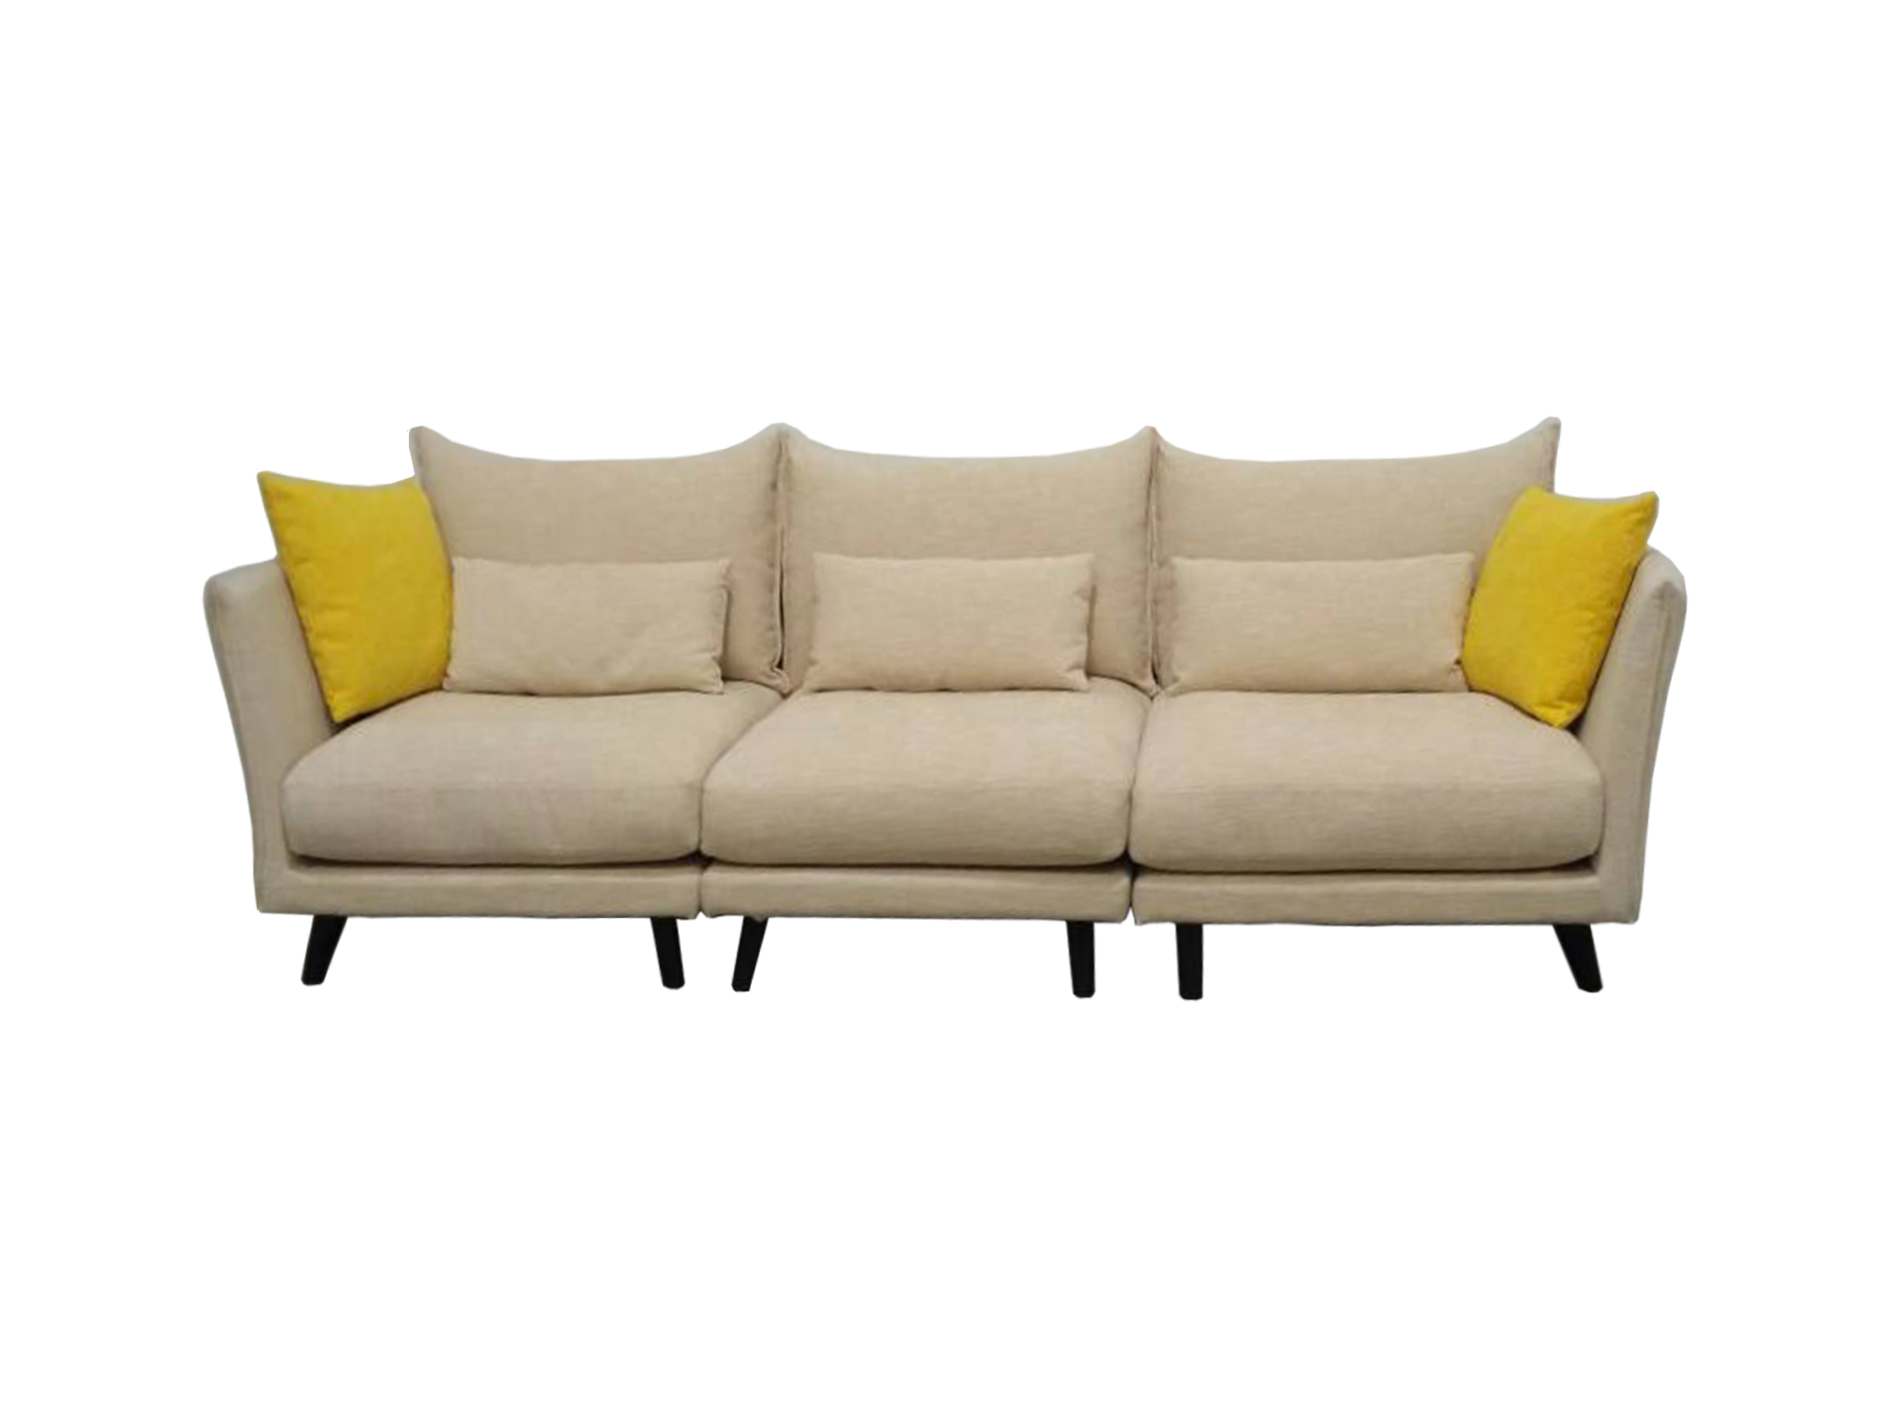 Modular Sofa Modular Fabric Sofa Best Modular Fabric Sofa 49 On Modern